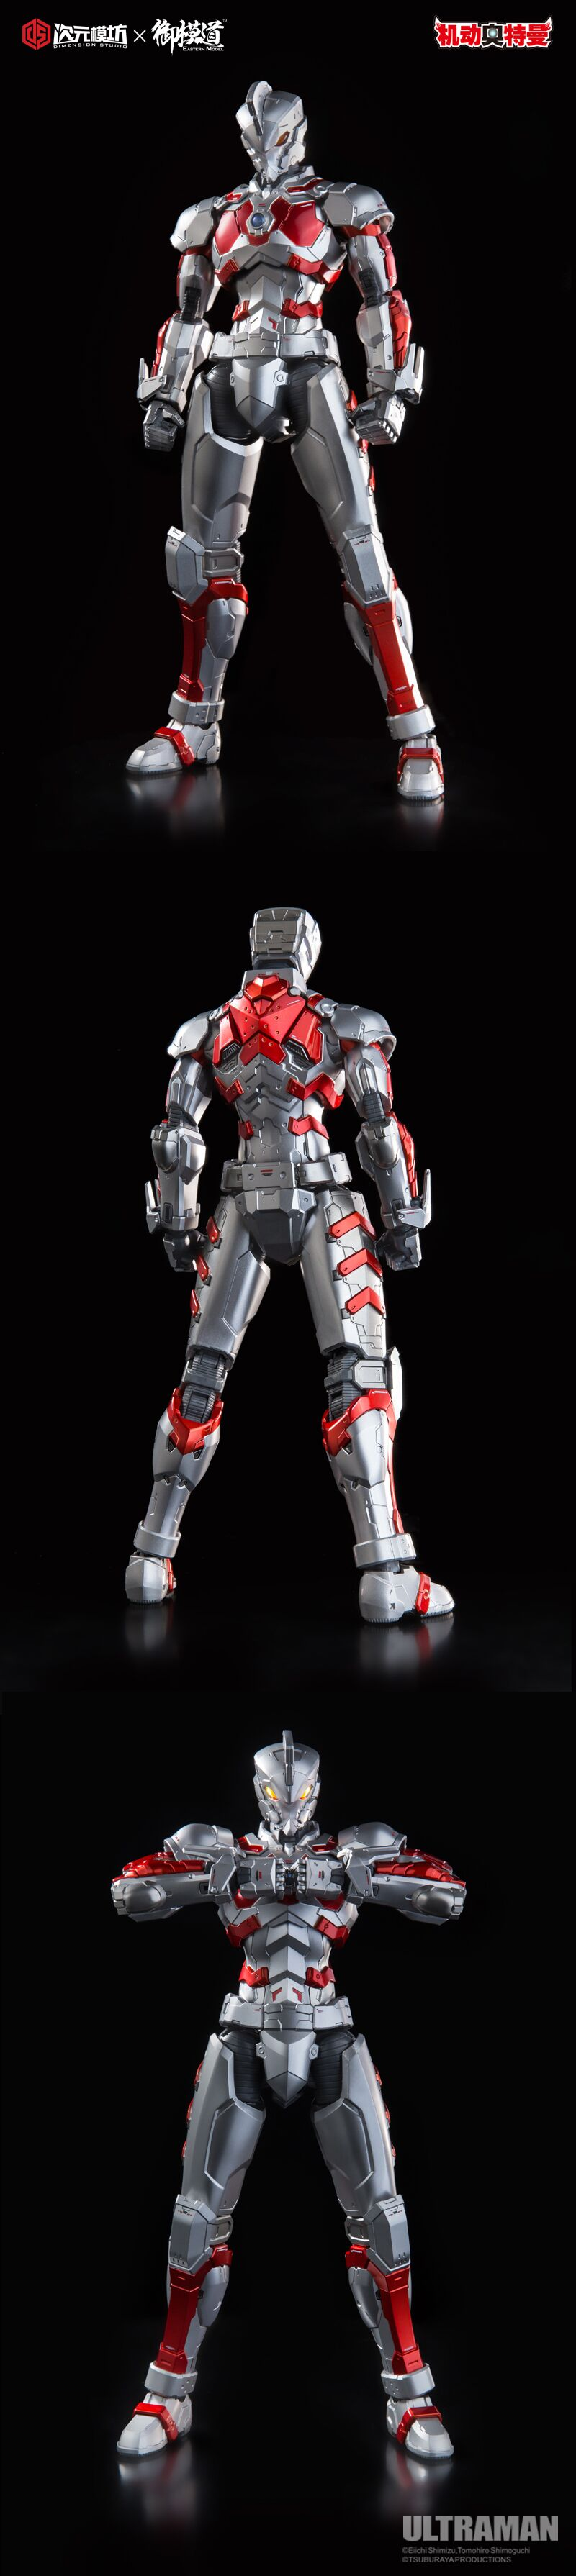 male - NEW PRODUCT: Dimension Mould X X Moto Road: 1/6 Mobile Ultraman Alloy Finished Series - Ess Altman 18213911